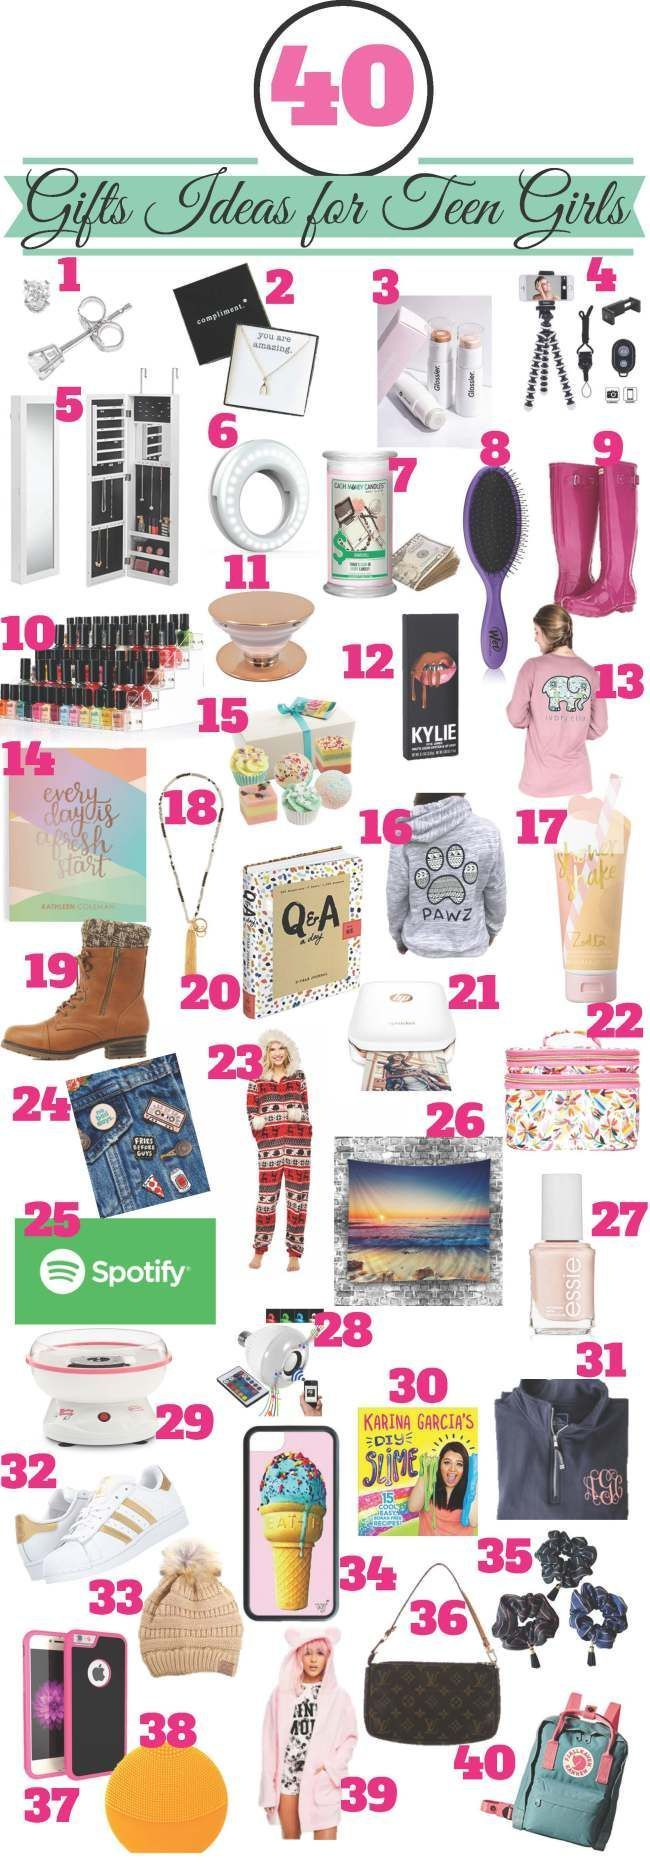 40 Gift Ideas for Teenage Girls   Christmas Gifts   Pinterest ...